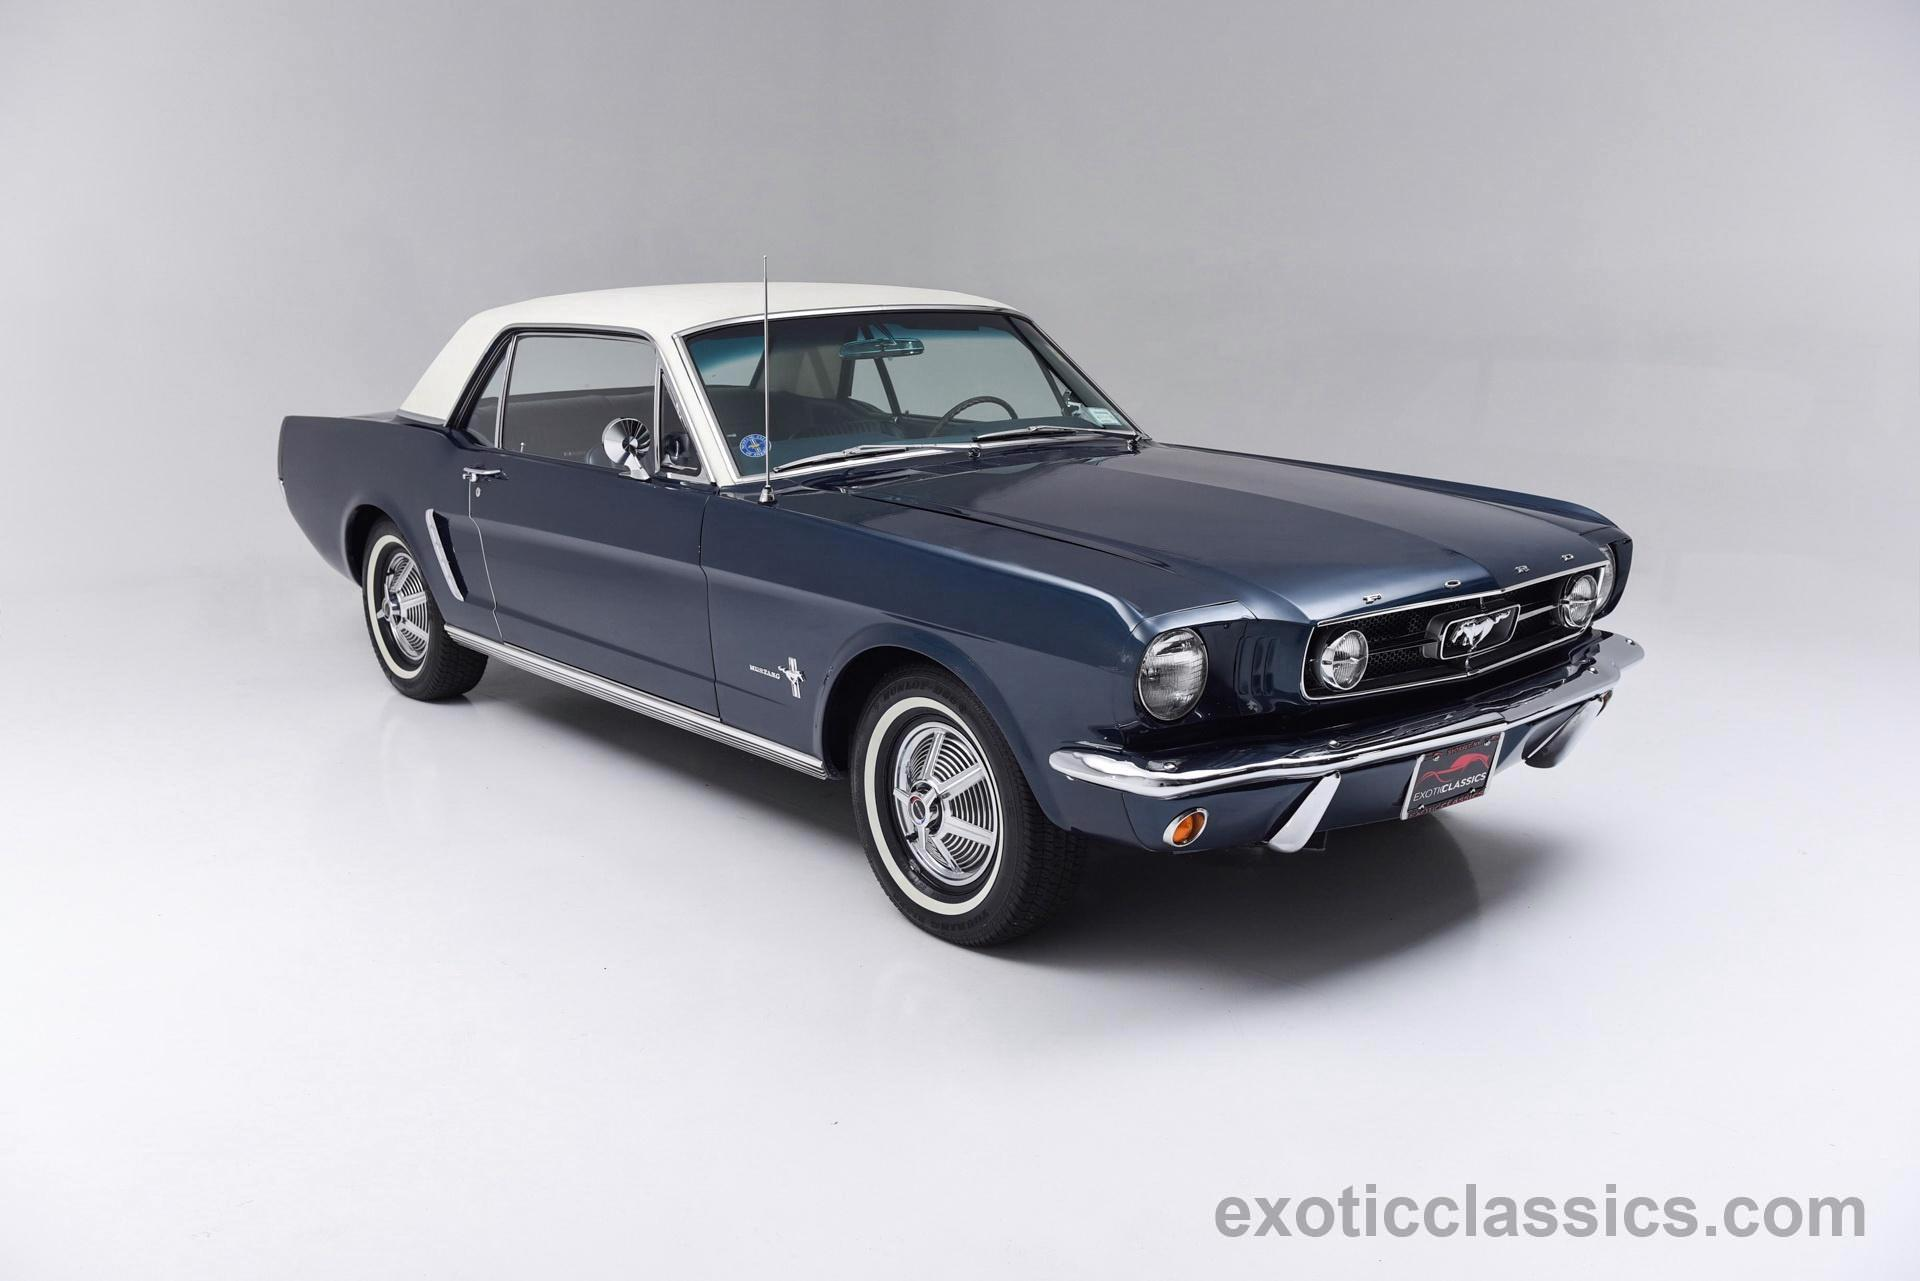 1965 Ford Mustang Exotic Classic Car Dealership New York